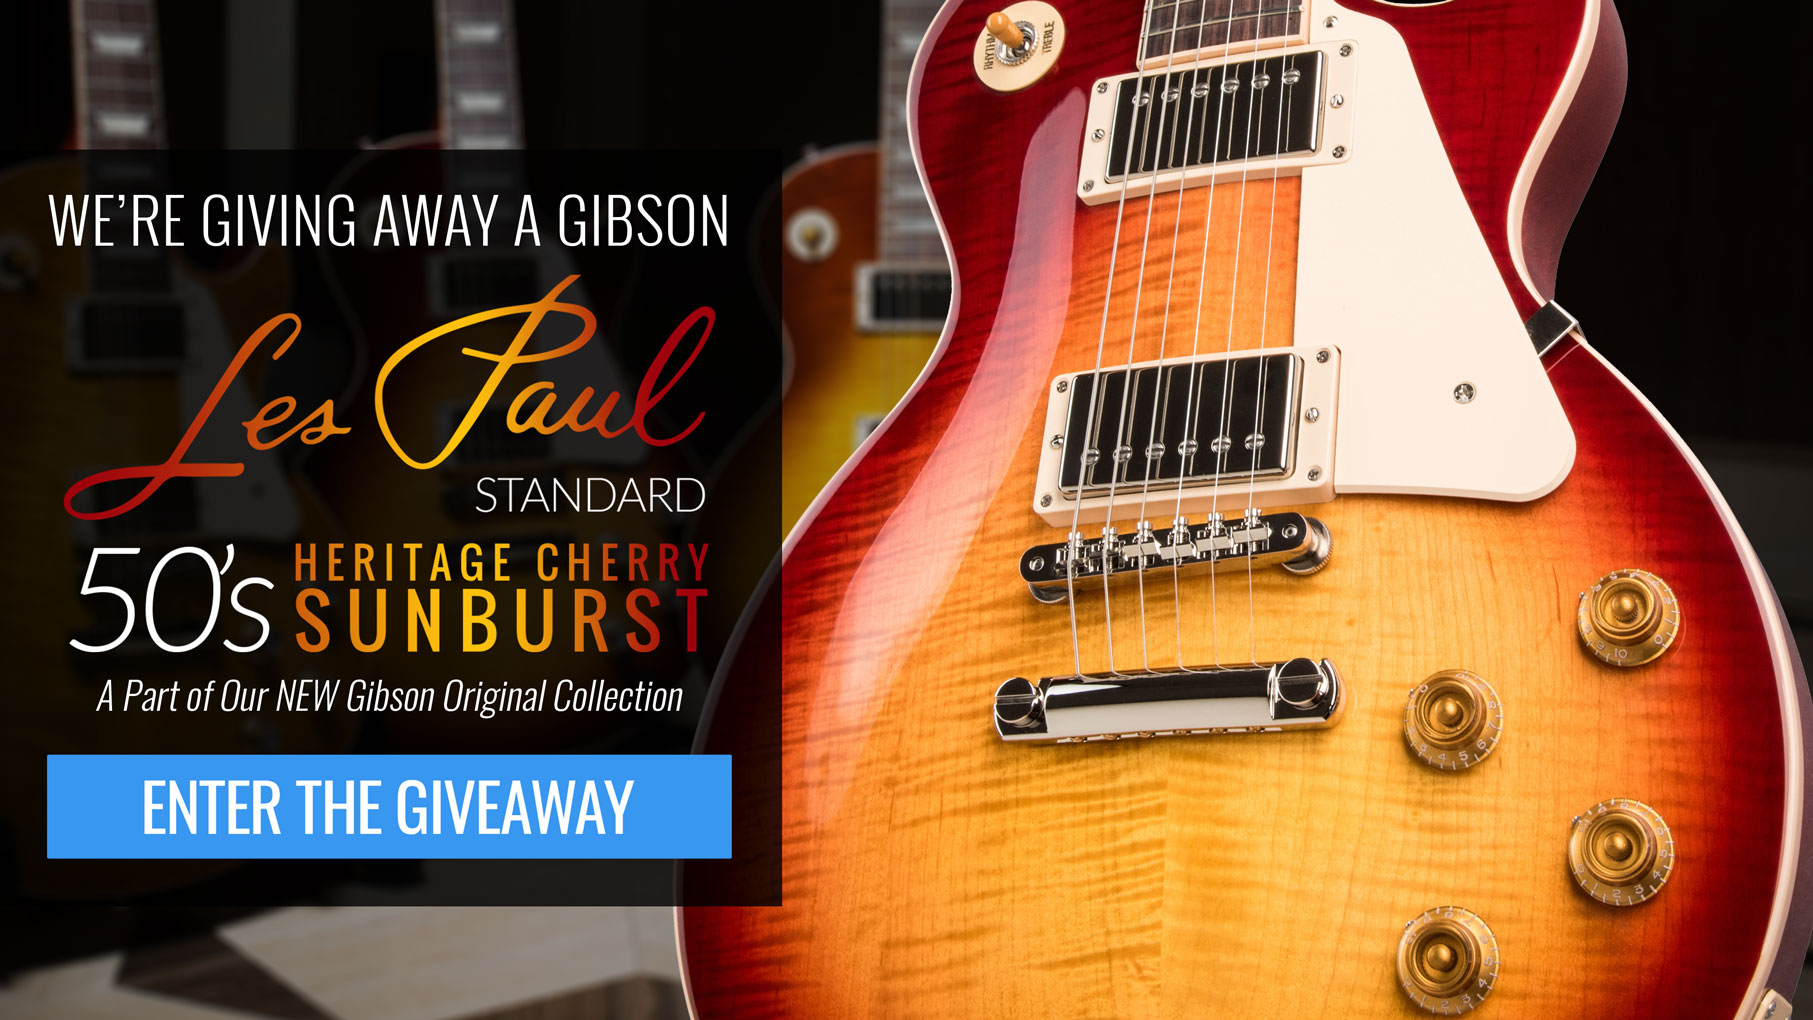 Enter to Win A New Gibson Original Les Paul Standard 50's Heritage Cherry Sunburst!